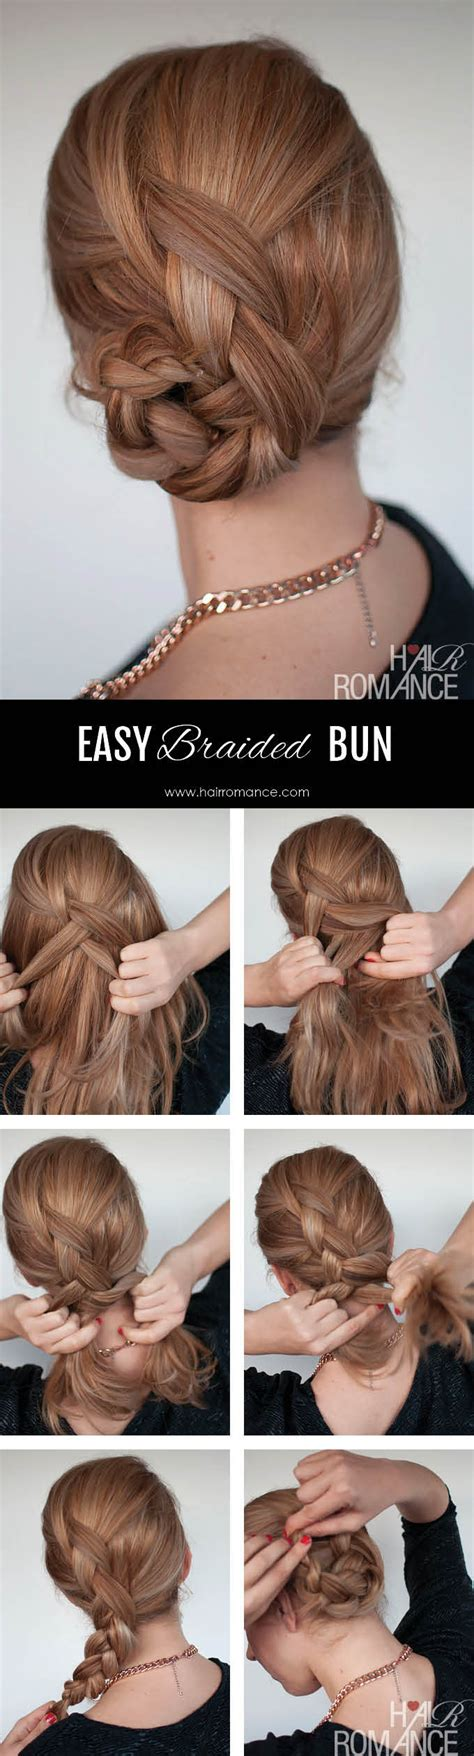 easy braided ponytail hairstyle how to hair romance easy braided bun hairstyle tutorial hair romance